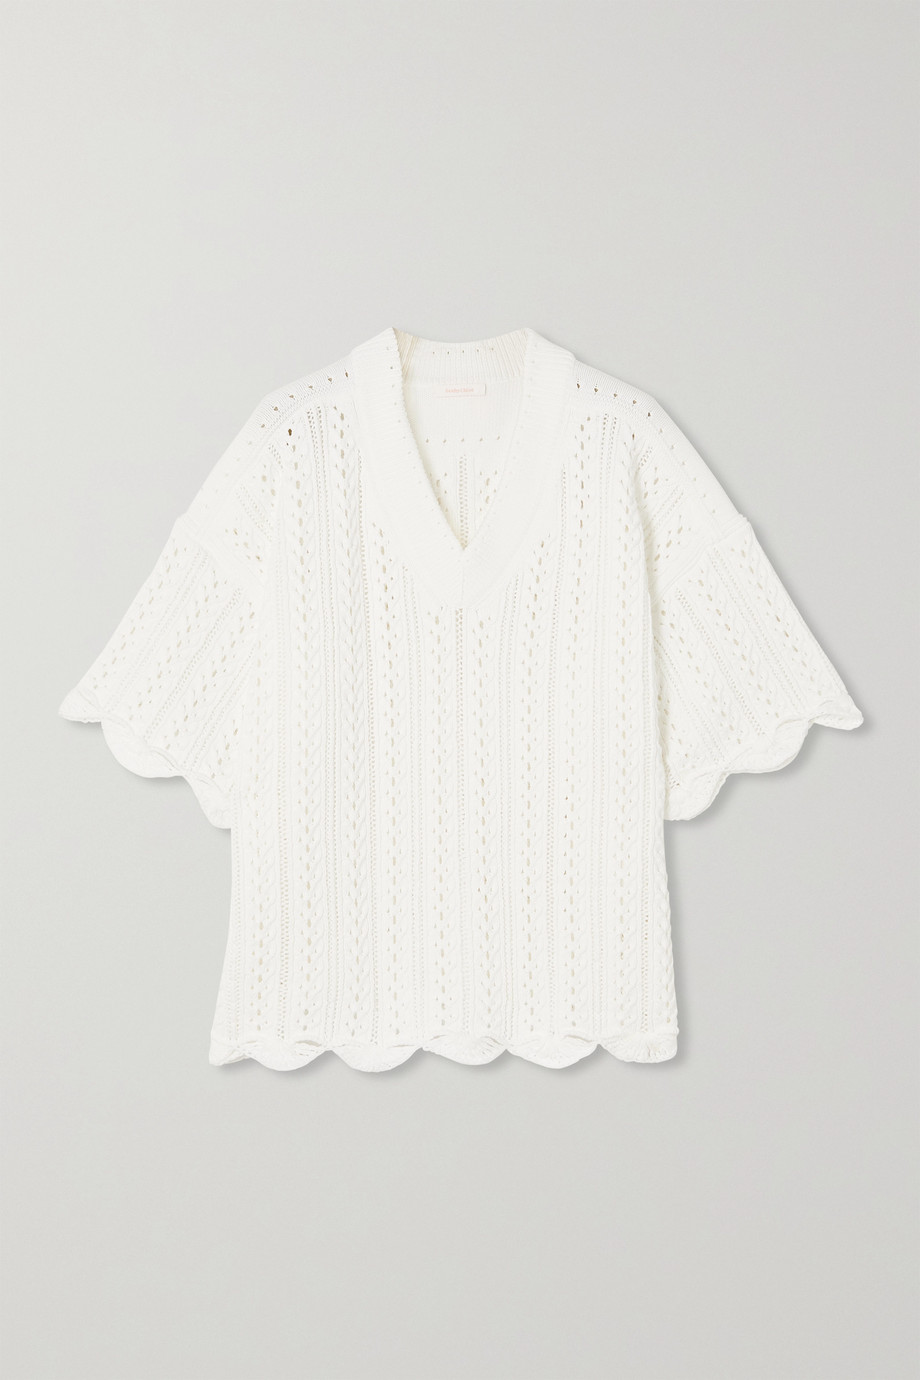 SEE BY CHLOÉ Scalloped crochet-knit cotton top